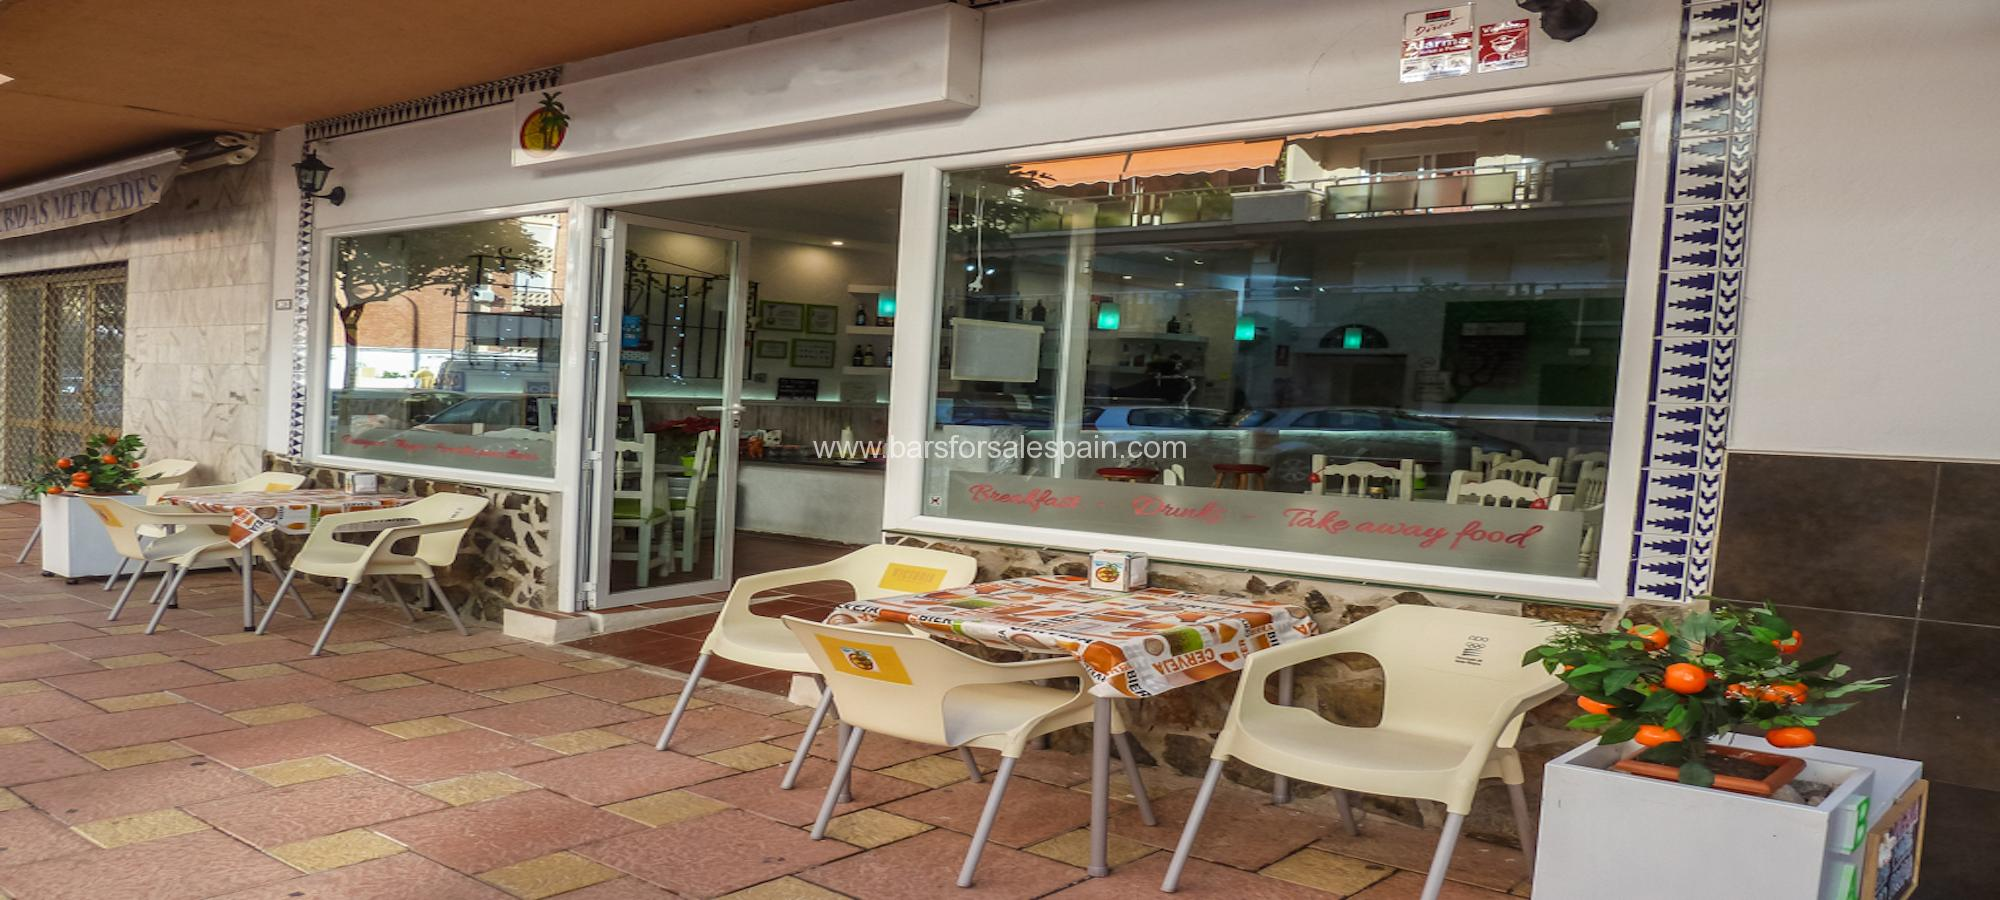 Starter bar with low overheads for lease in Fuengirola